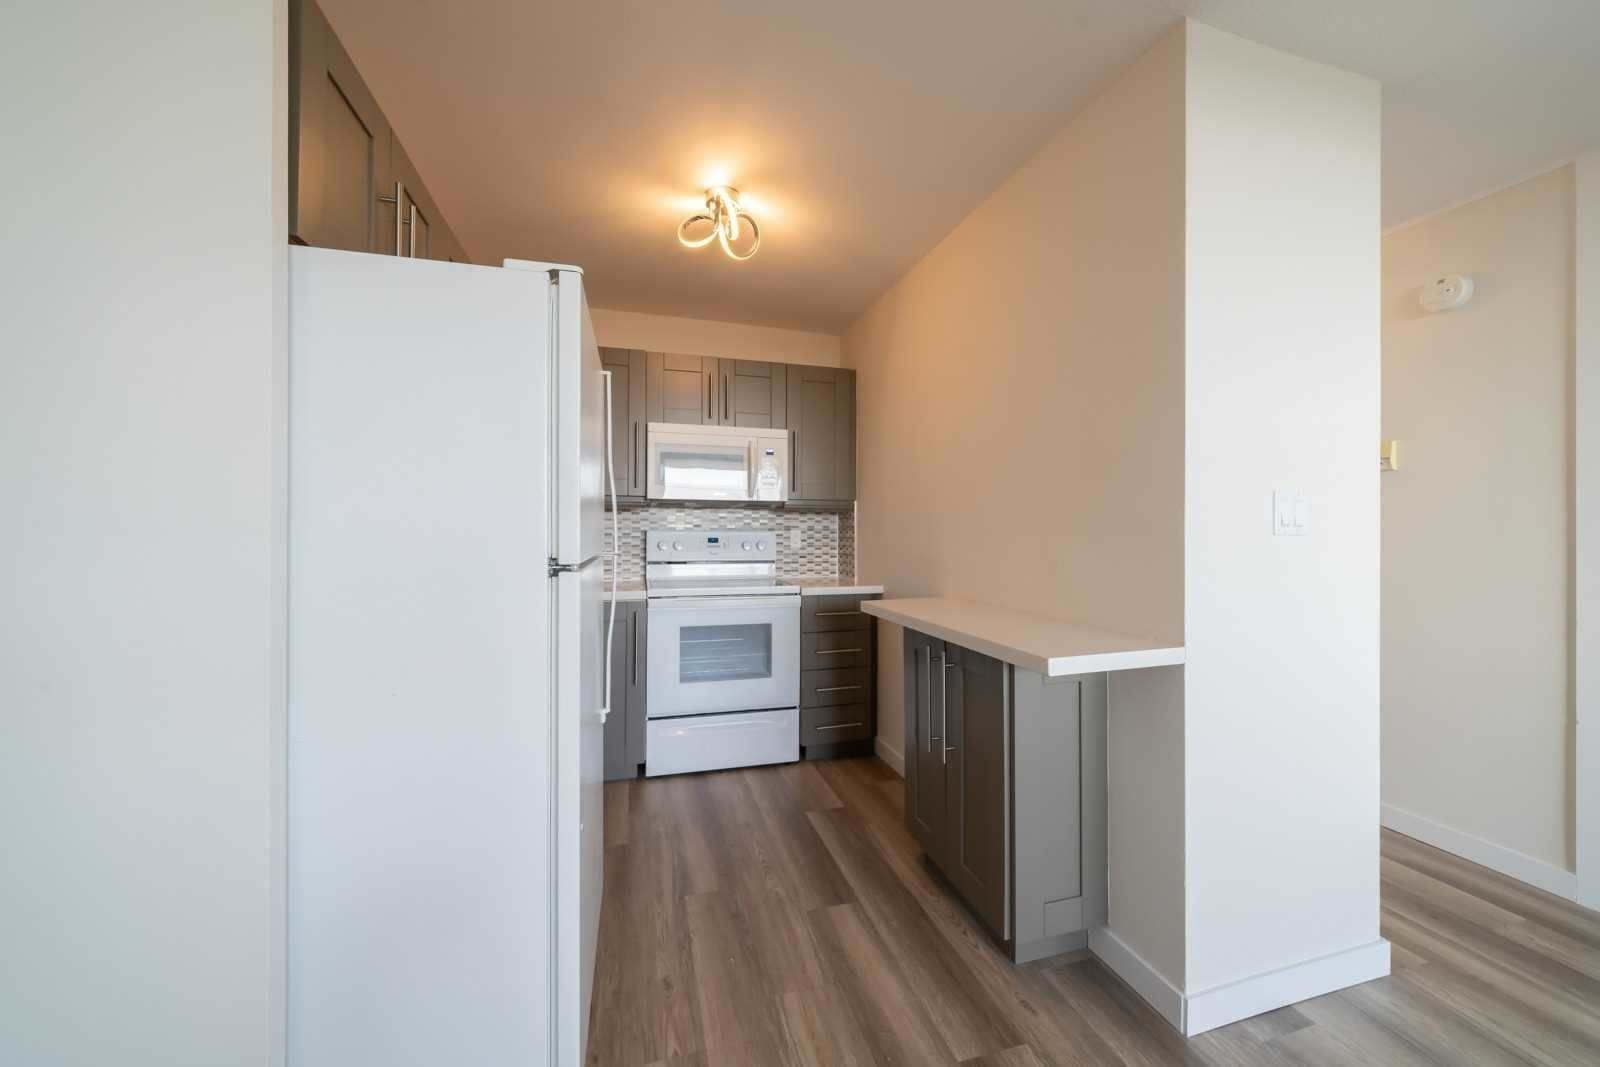 40 Homewood Ave, unit 1810 for rent in Toronto - image #2